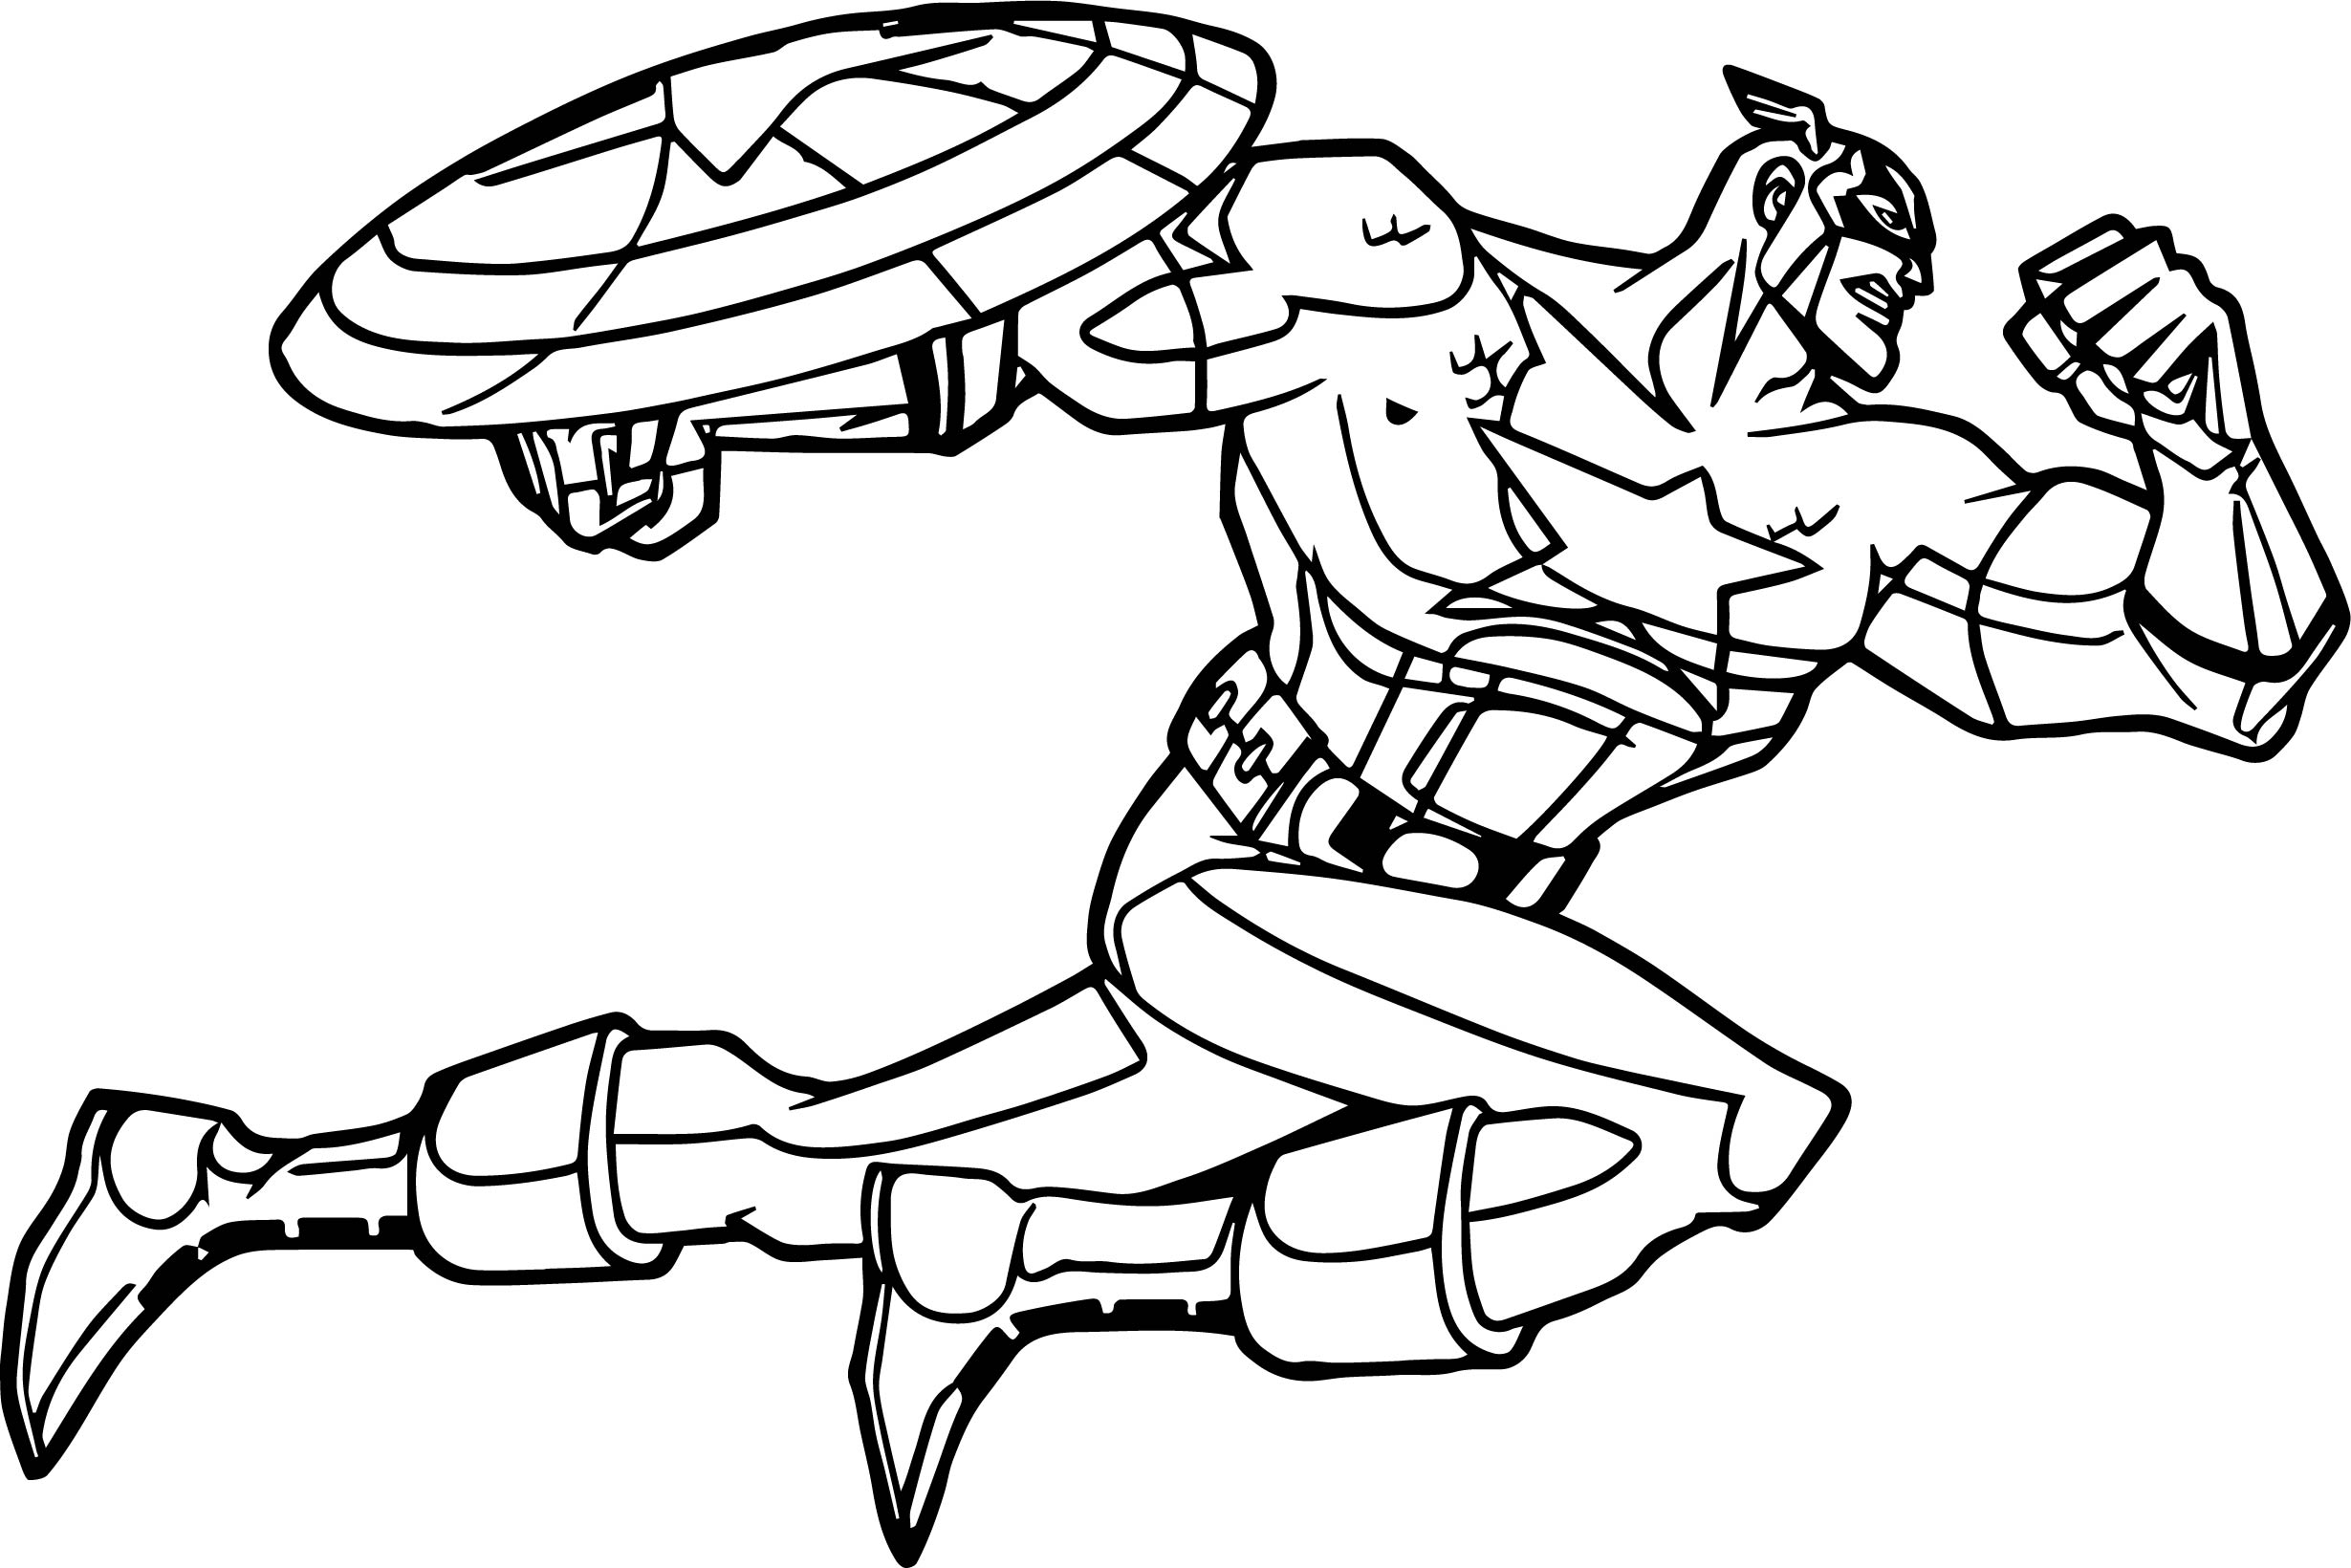 Captain America Fast Attack Coloring Page